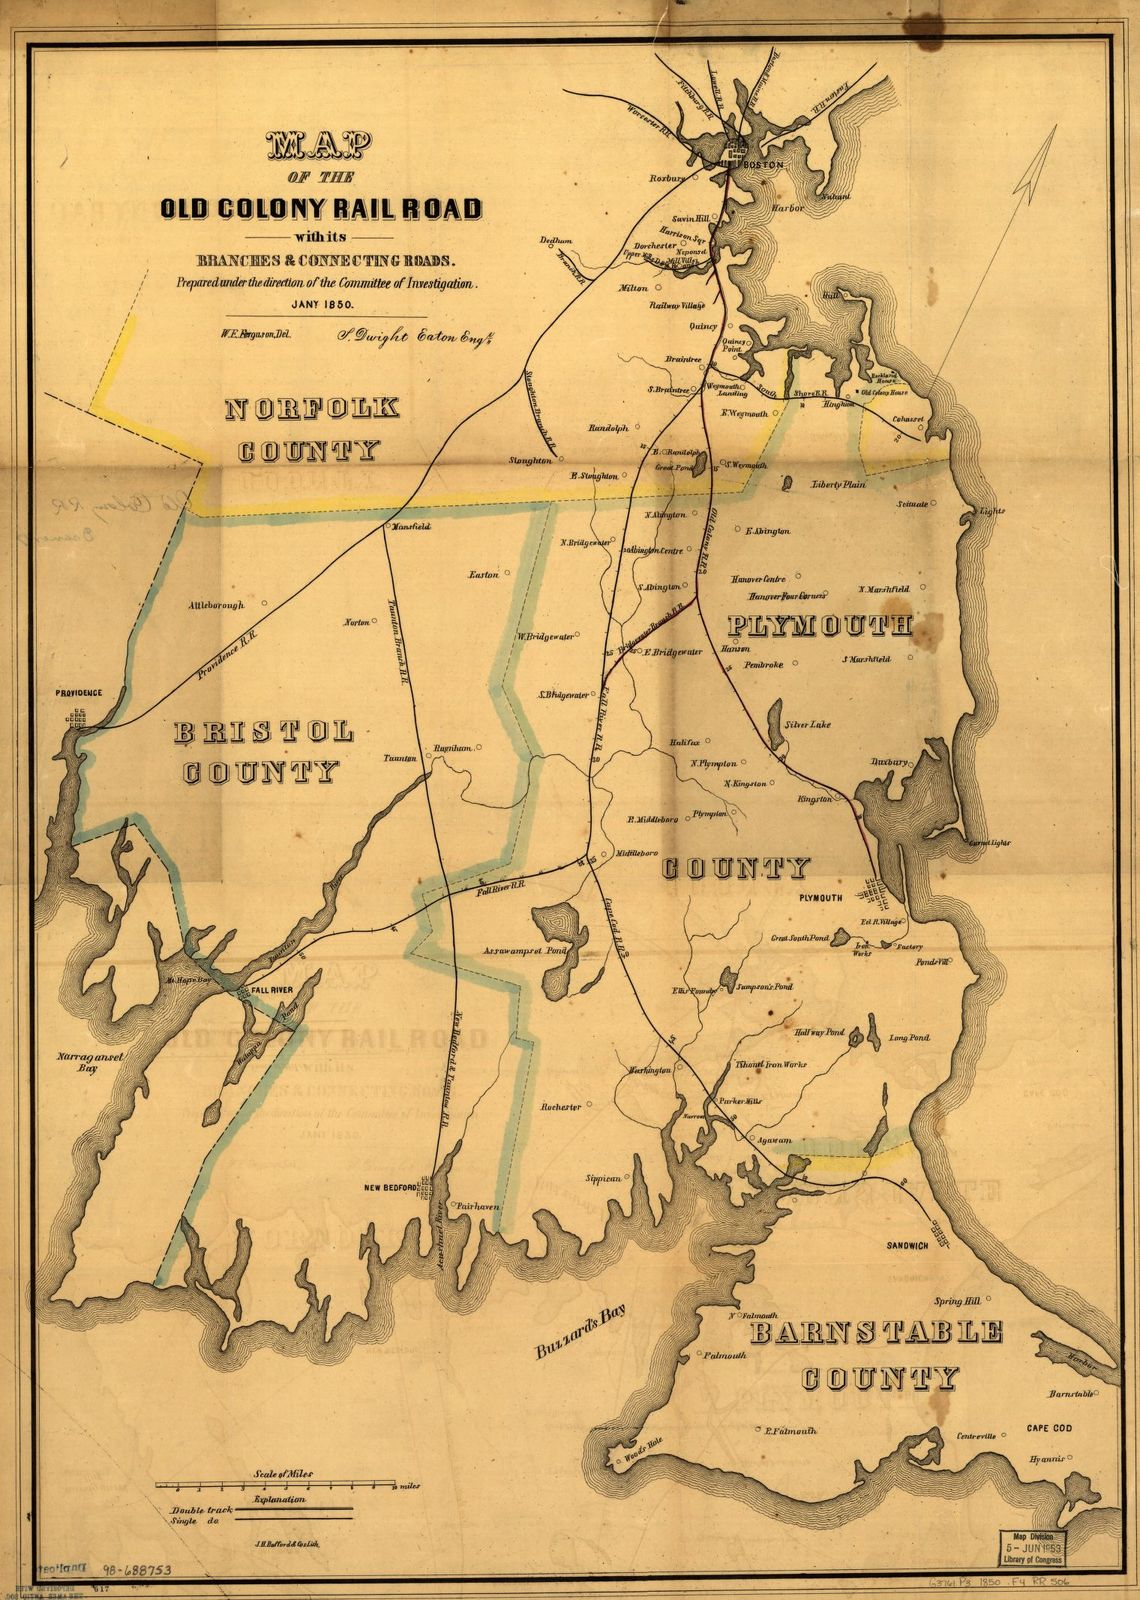 Map of the Old Colony Rail Road with its branches & connecting roads, prepared under the direction of the Committee of Investigation, Jany. 1850, S. Dwight Eaton, Engr.